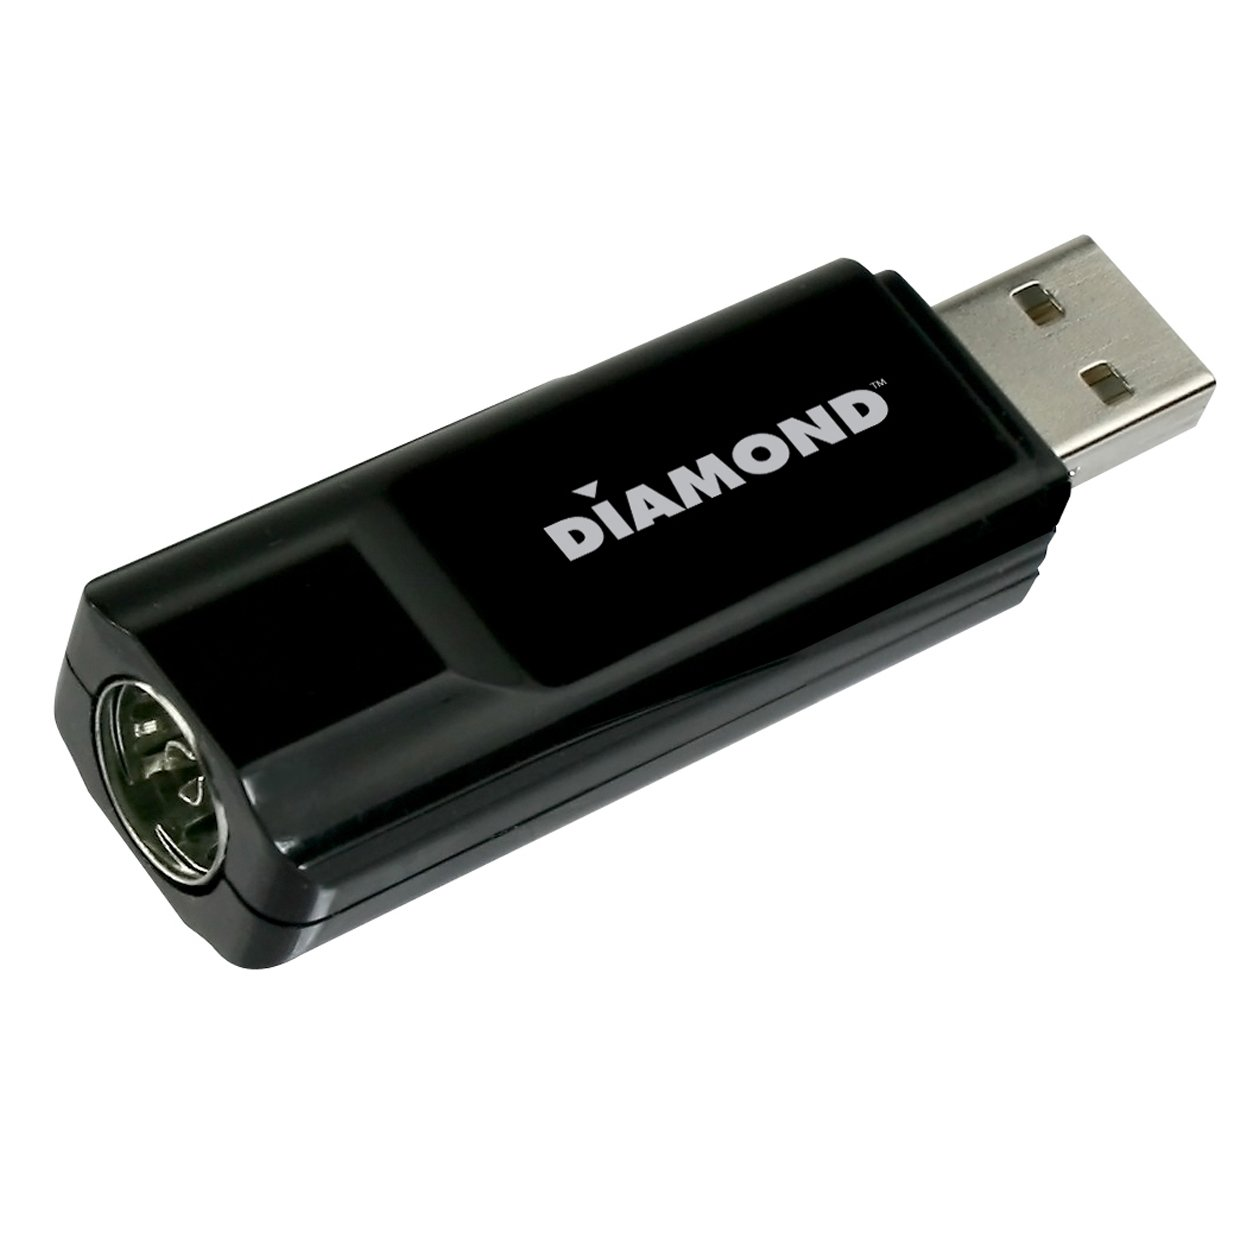 Best Data Products TVW750USBD Diamond ATI Theater HD 750 USB TV Tuner